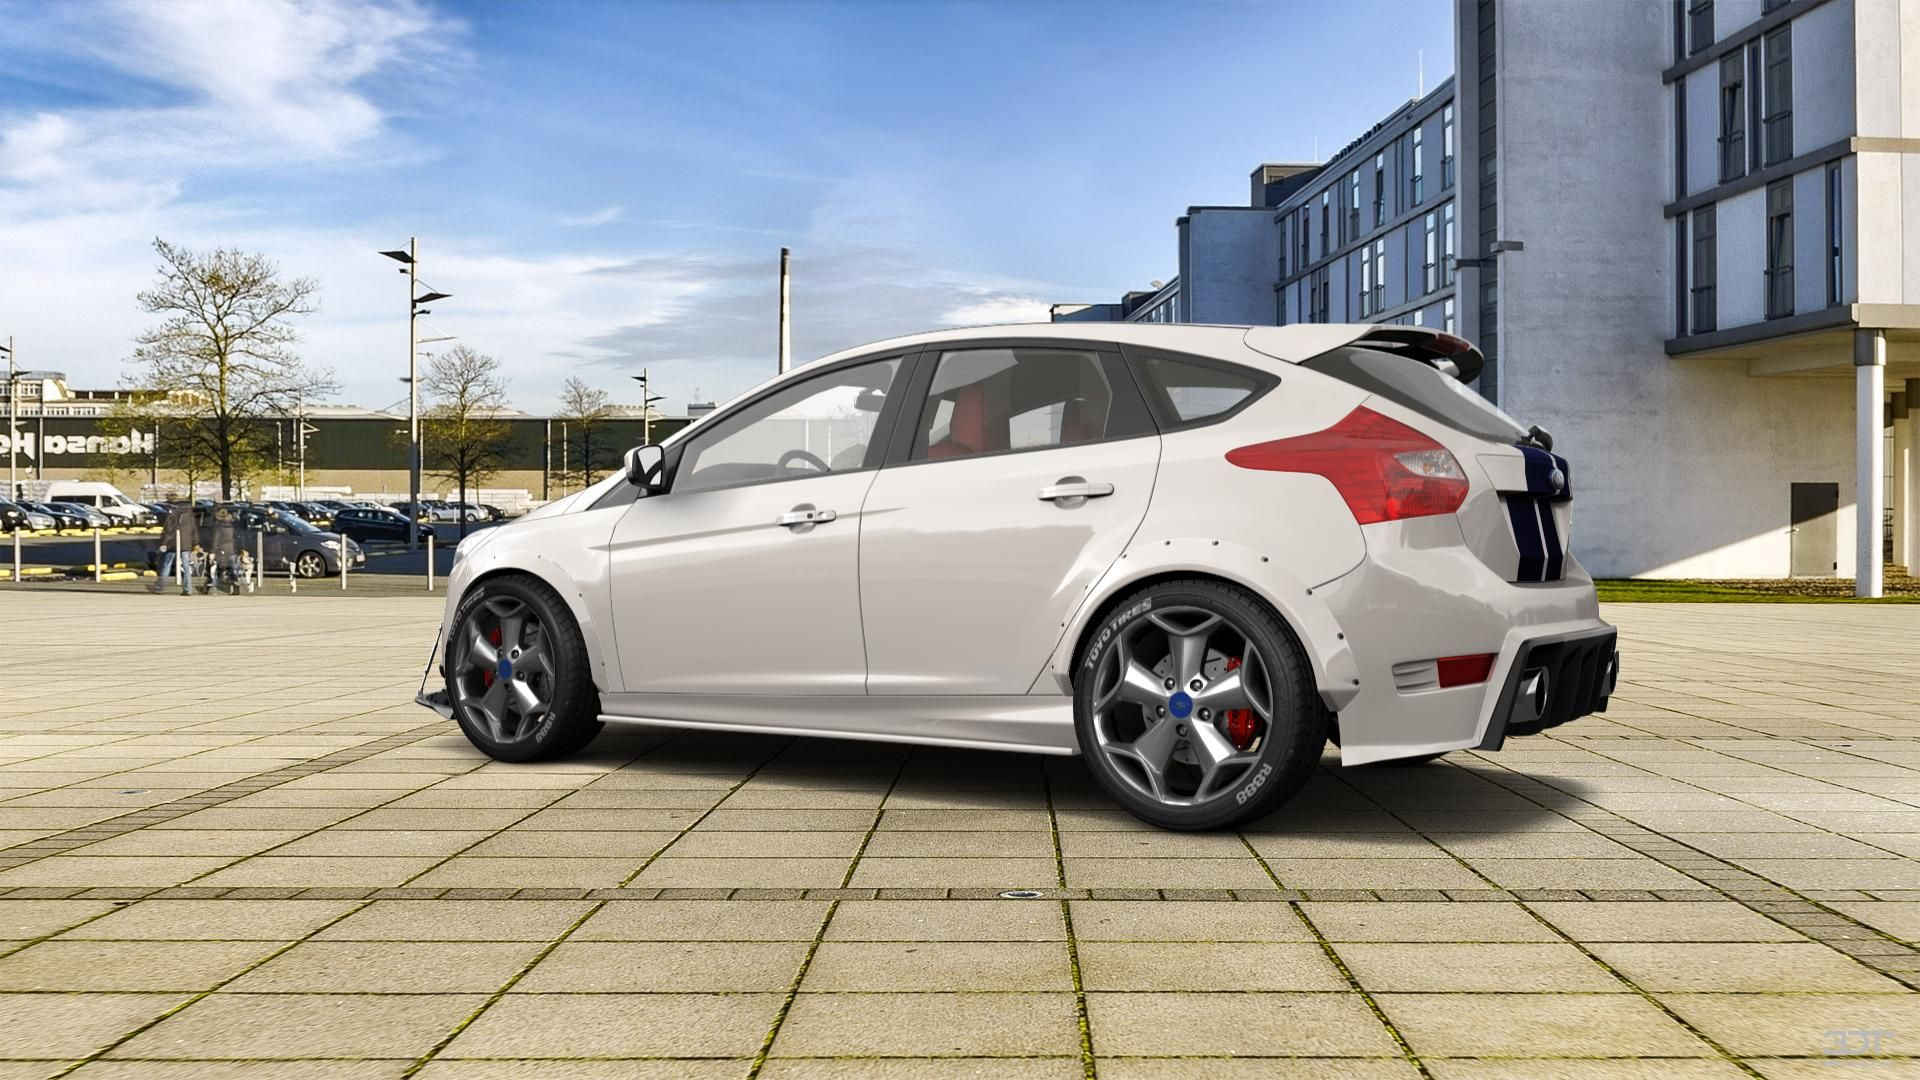 checkout my tuning ford focus 2011 at 3dtuning 3dtuning tuning in 2020 ford focus ford hatchback pinterest